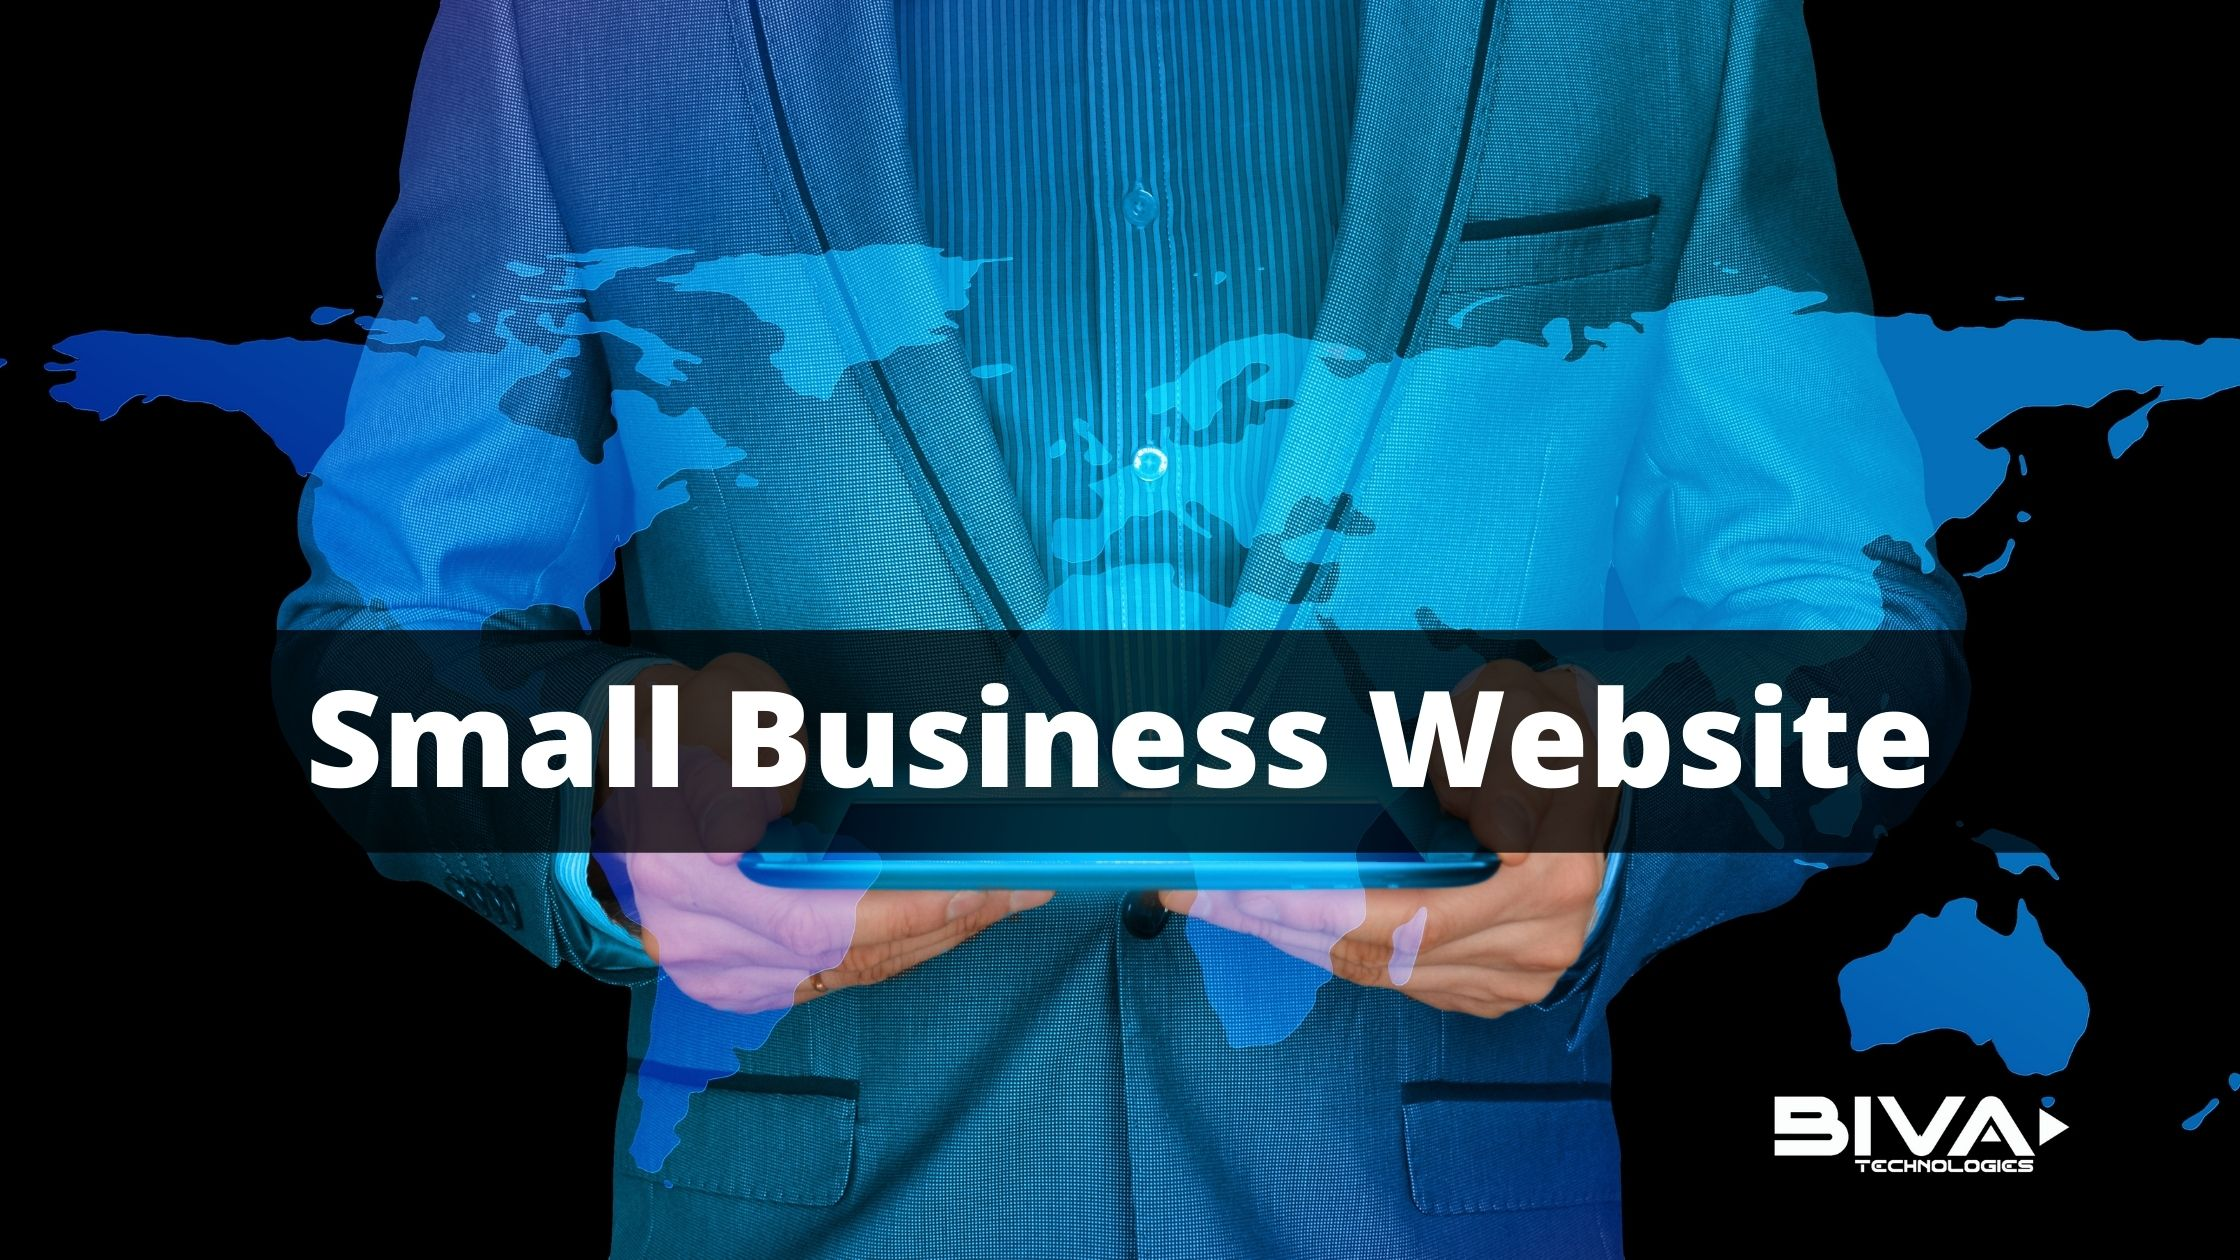 How to Make Small Business Website within your Budget (2021)